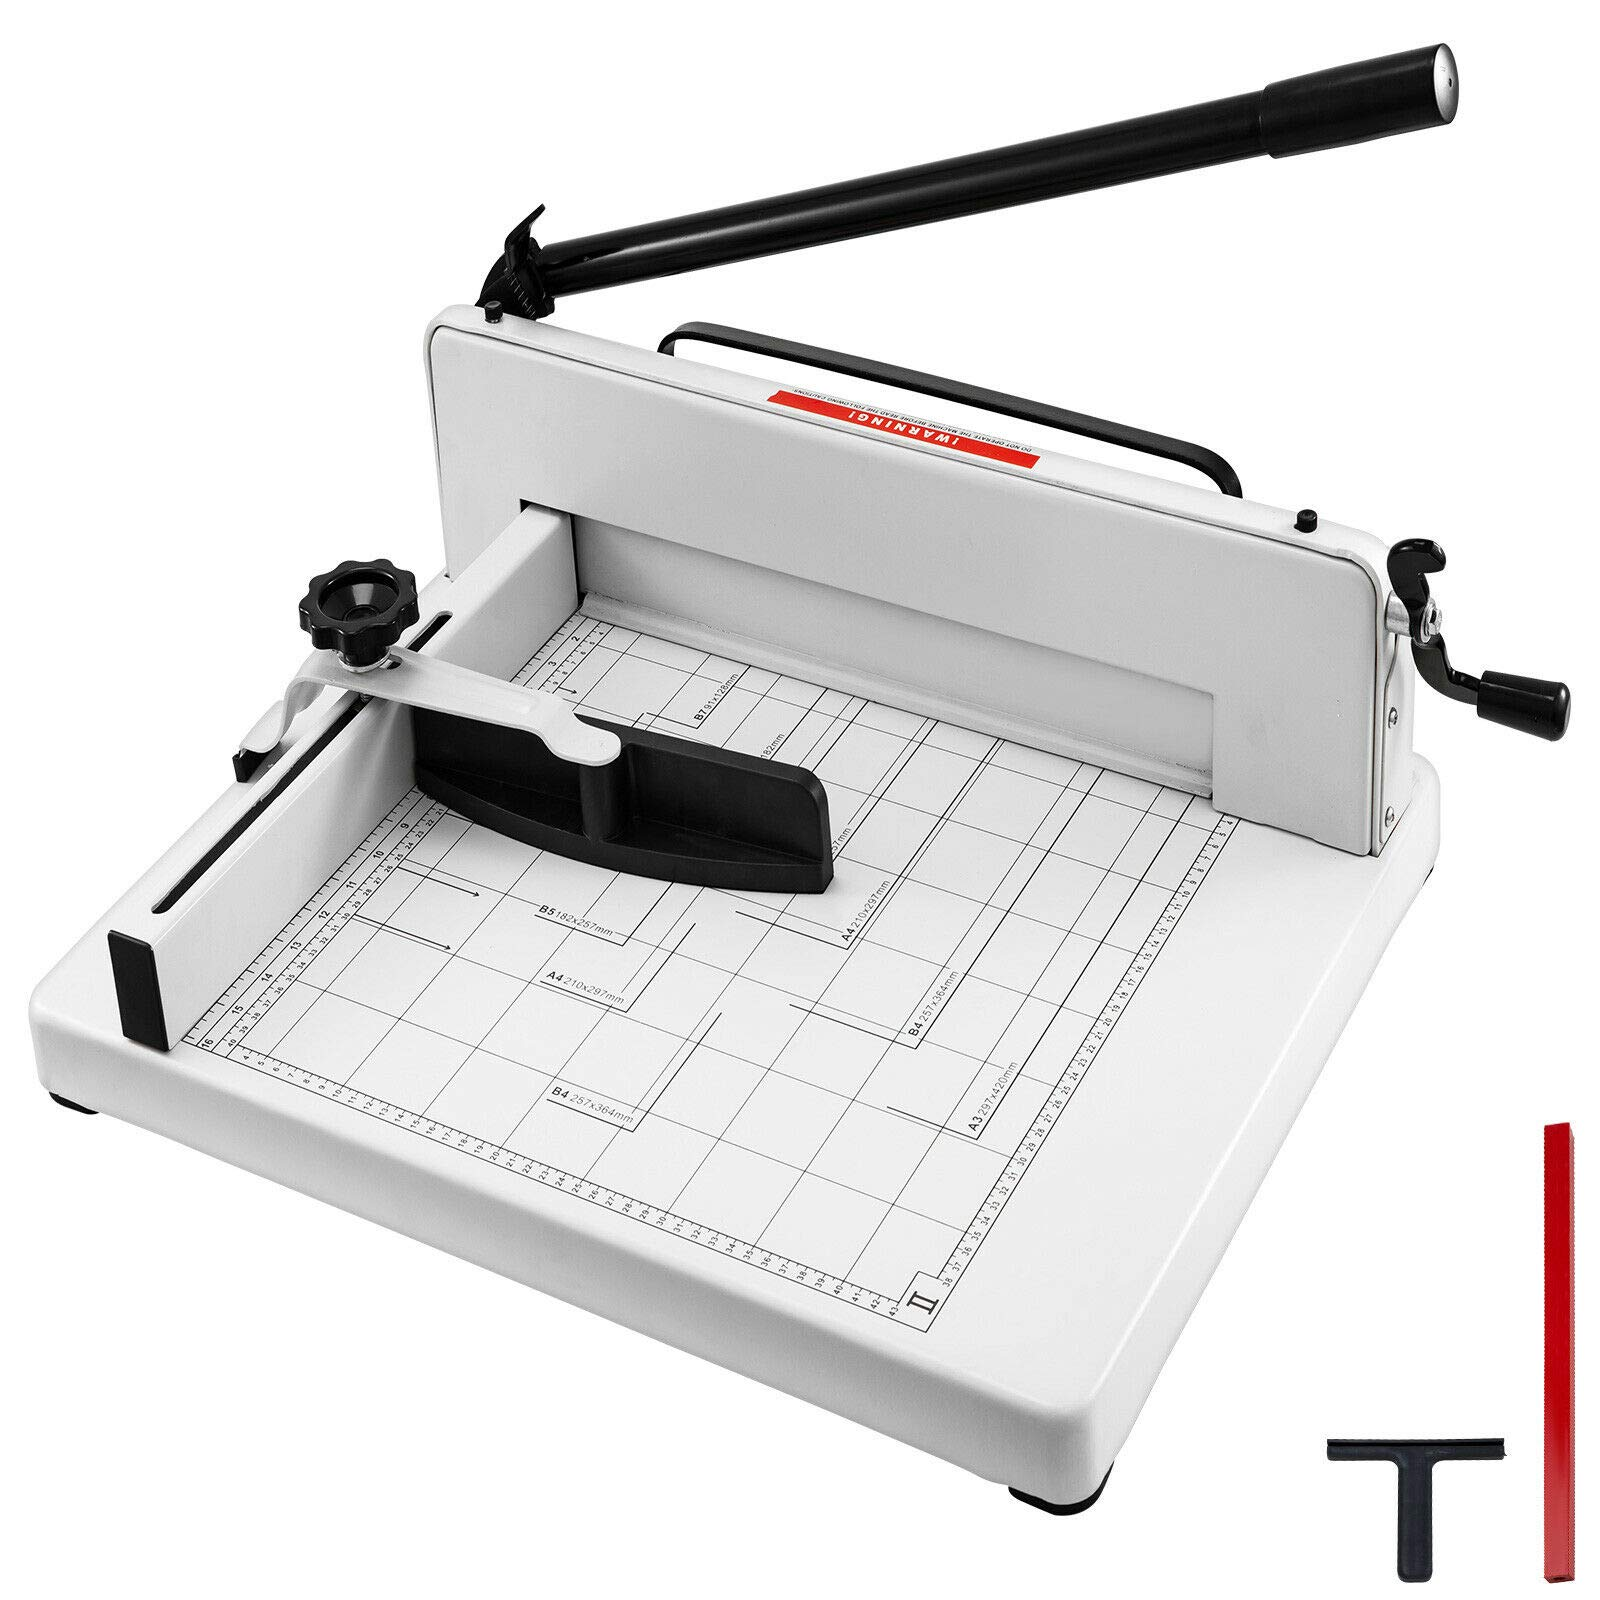 Mophorn Paper Cutter A3 Industrial Heavy Duty Guillotine Trimmer 17Inch 400 Sheets Heavy Duty Paper Cutter Trimmer Machine (A3-17Inch) by Mophorn